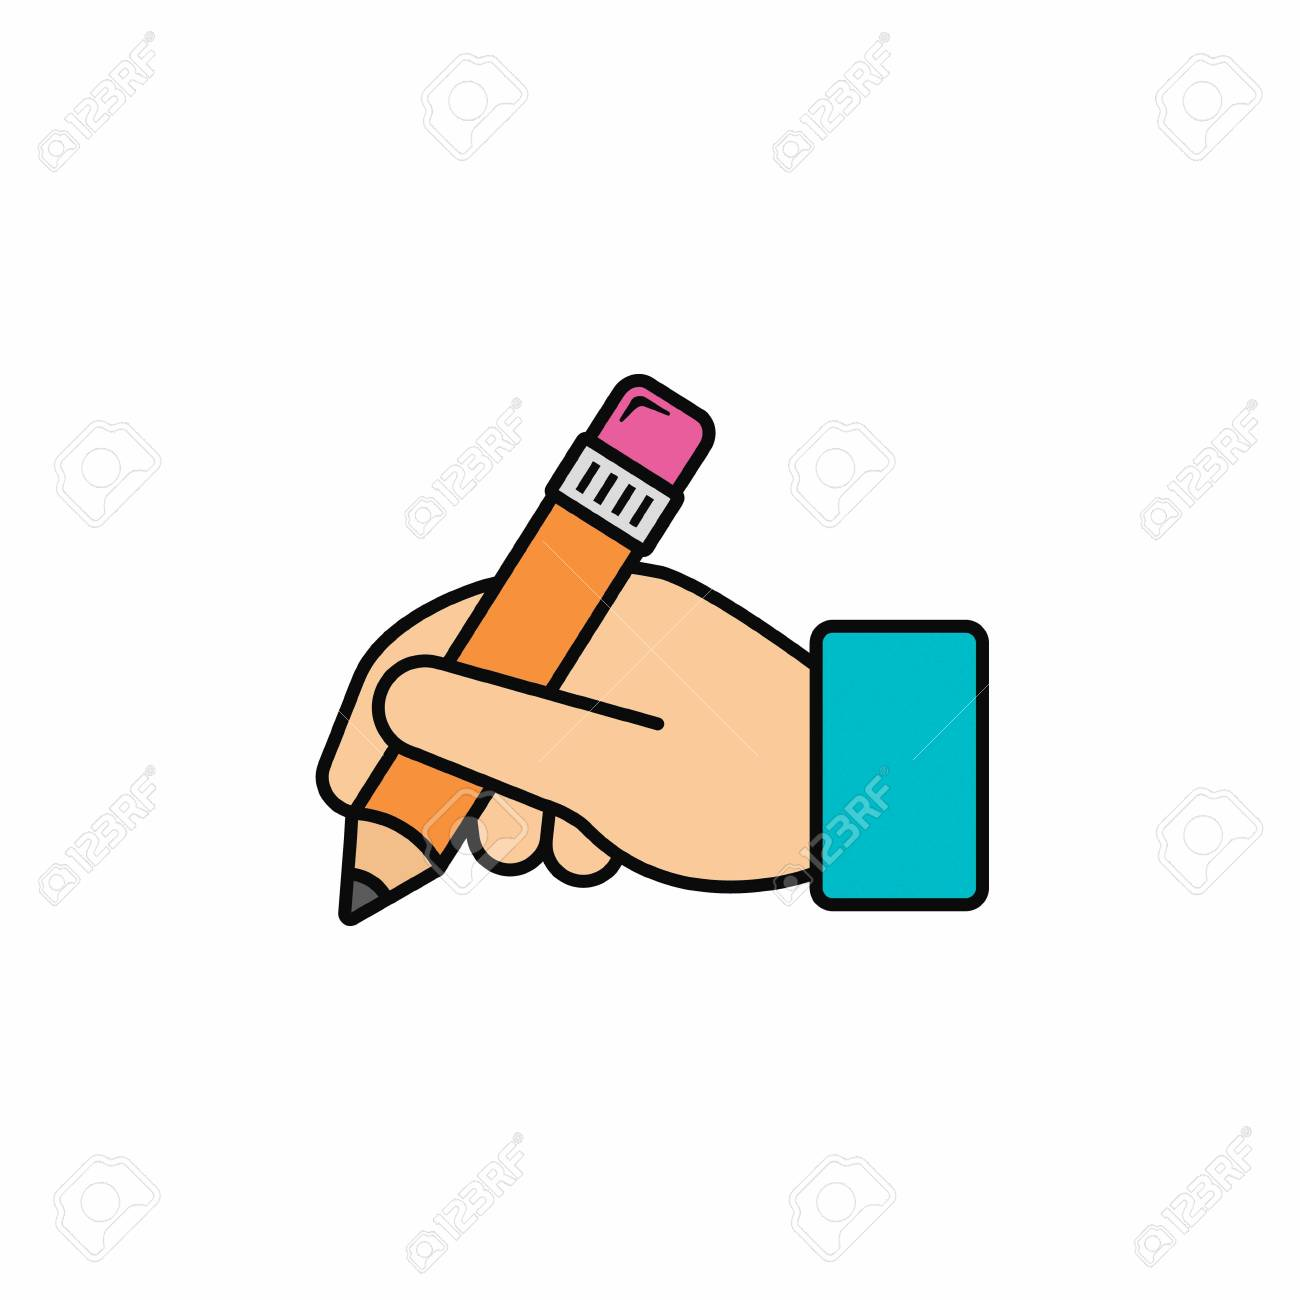 Hand hold pencil icon. Hand writing icon. Vector color illustration. - 97483203